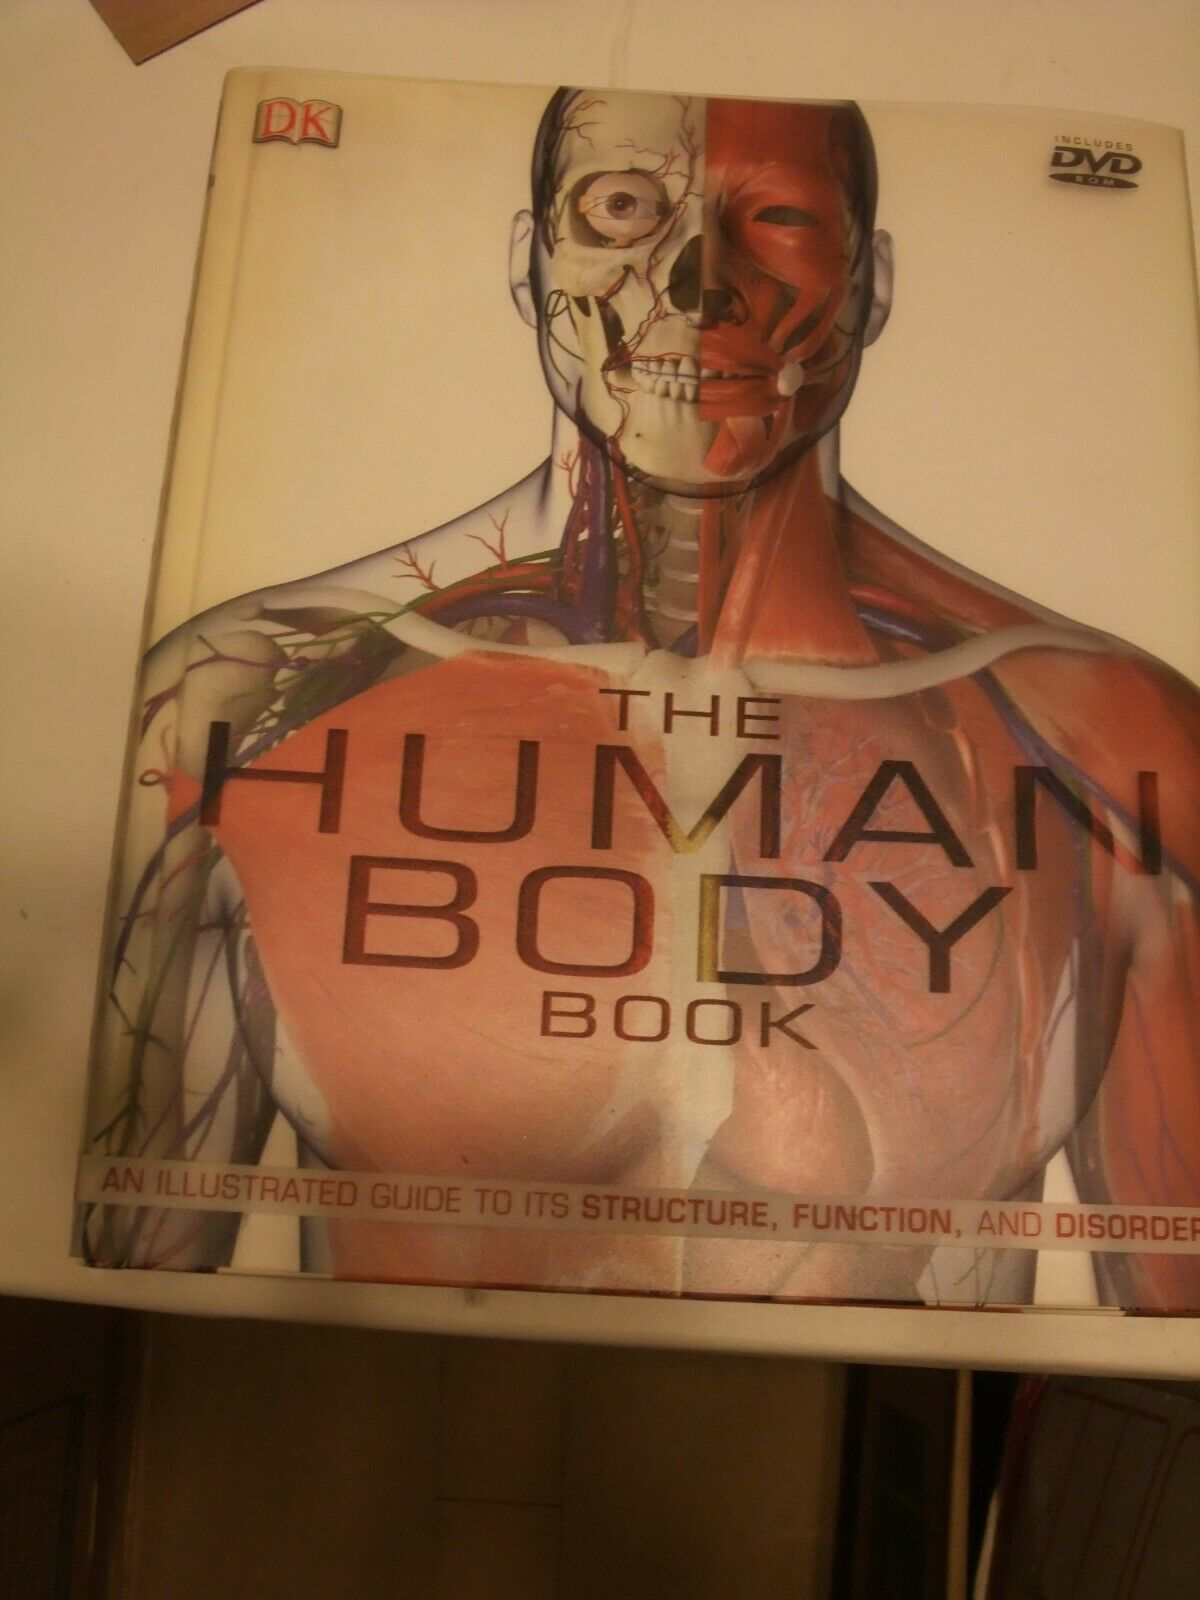 Primary image for The Human Body by Steve Parker, Dorling Kindersley DVD included